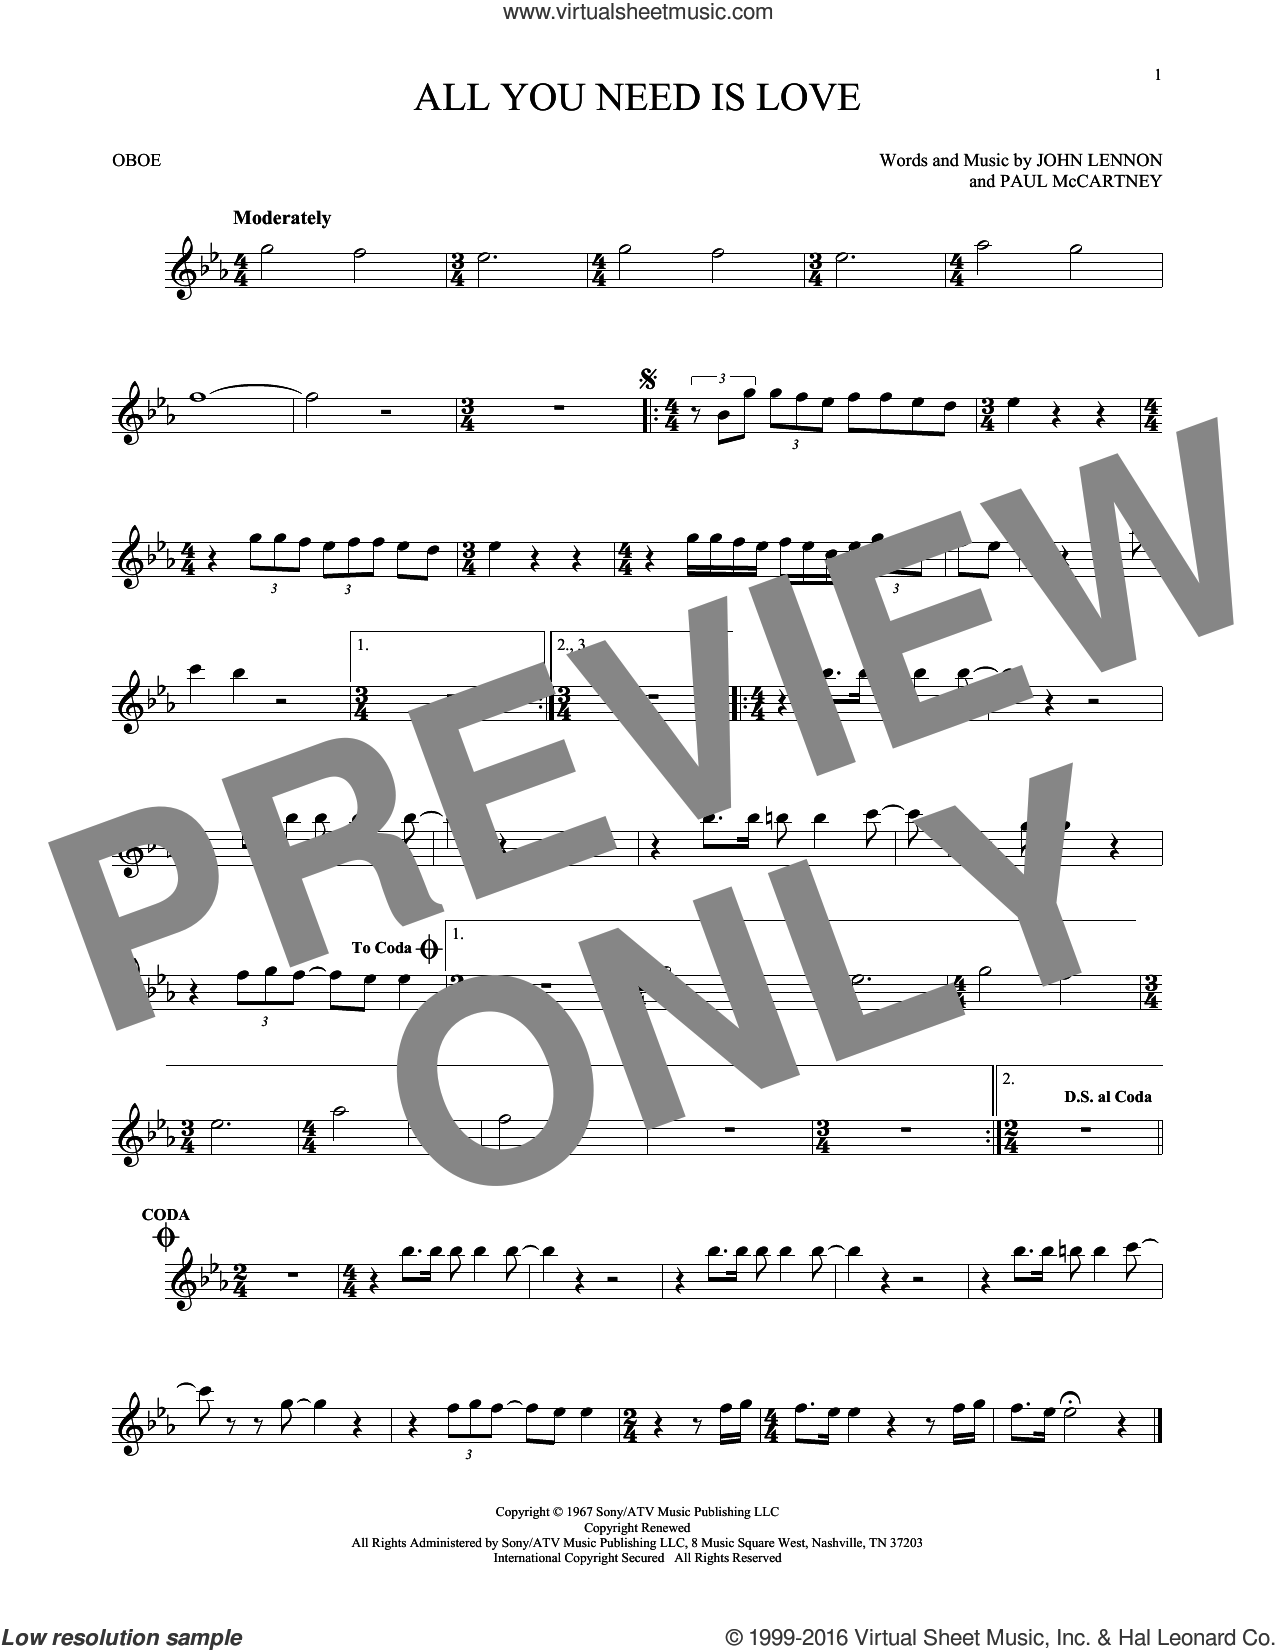 All You Need Is Love sheet music for oboe solo by The Beatles, John Lennon and Paul McCartney, intermediate skill level